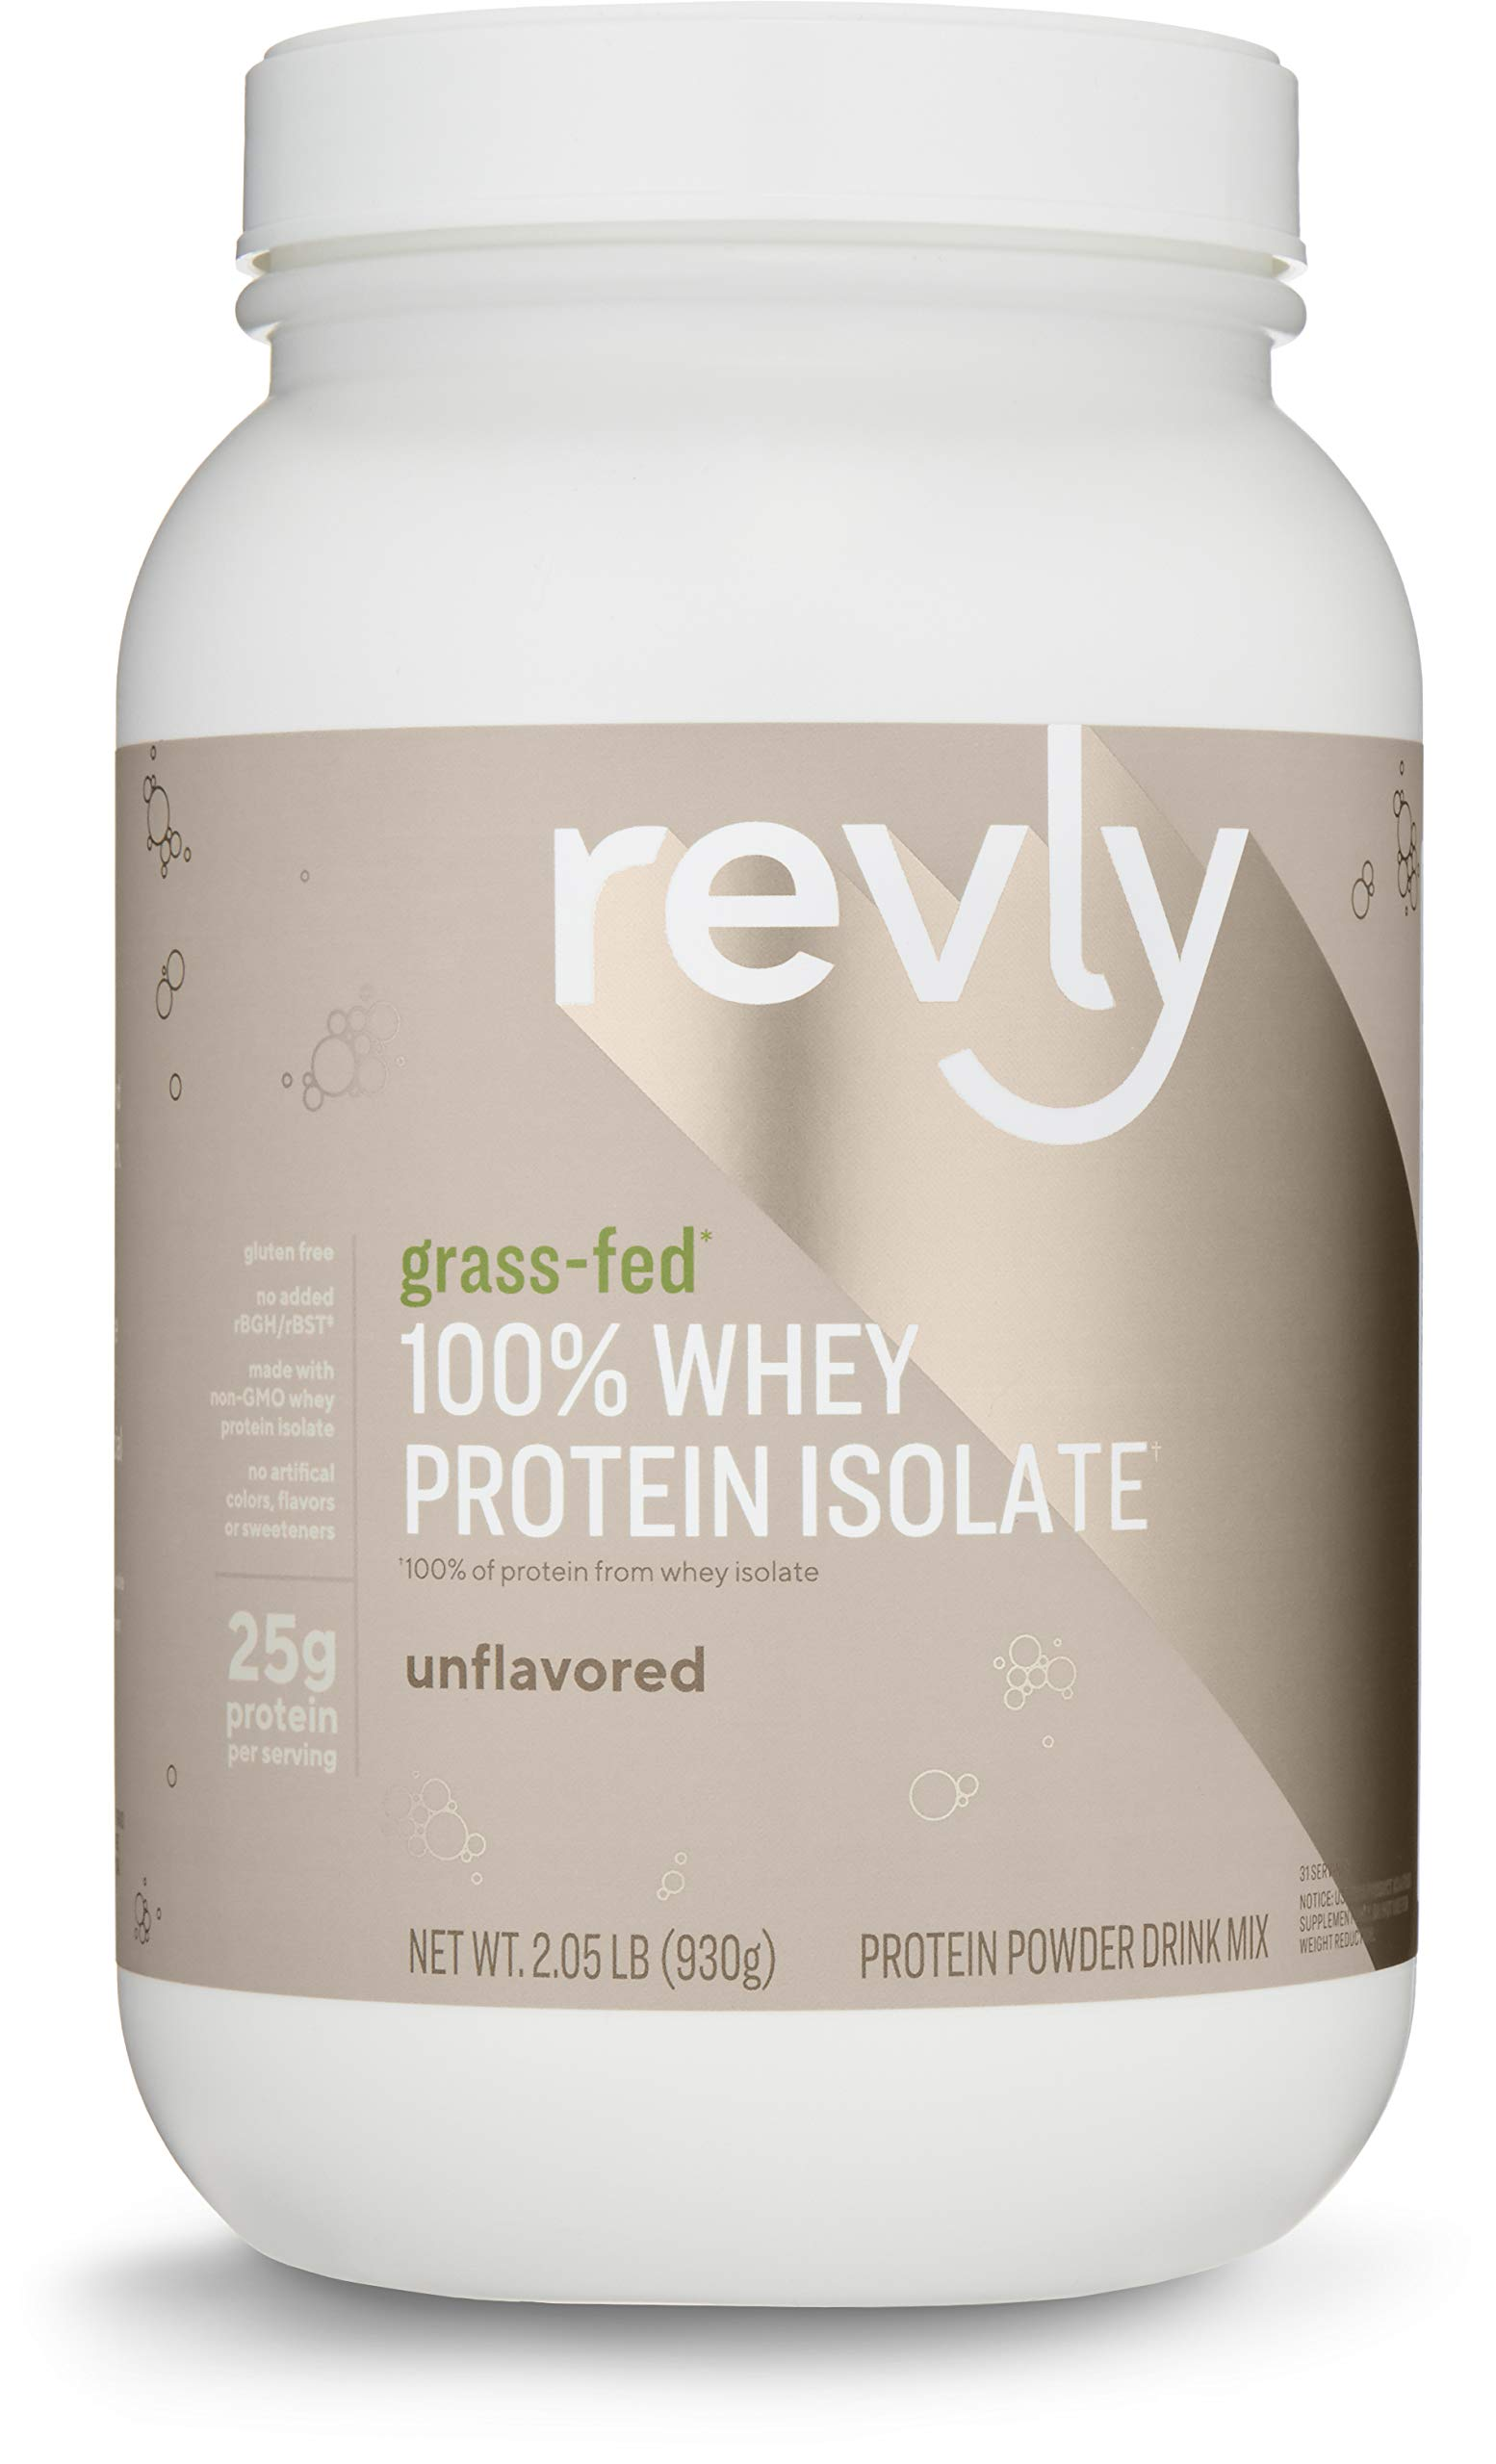 Amazon Brand - Revly 100% Grass-Fed Whey Protein Isolate Powder, Unflavored, 2.05 Pound (31 Servings), Gluten Free, Non-GMO, No added rbgh/rbst‡